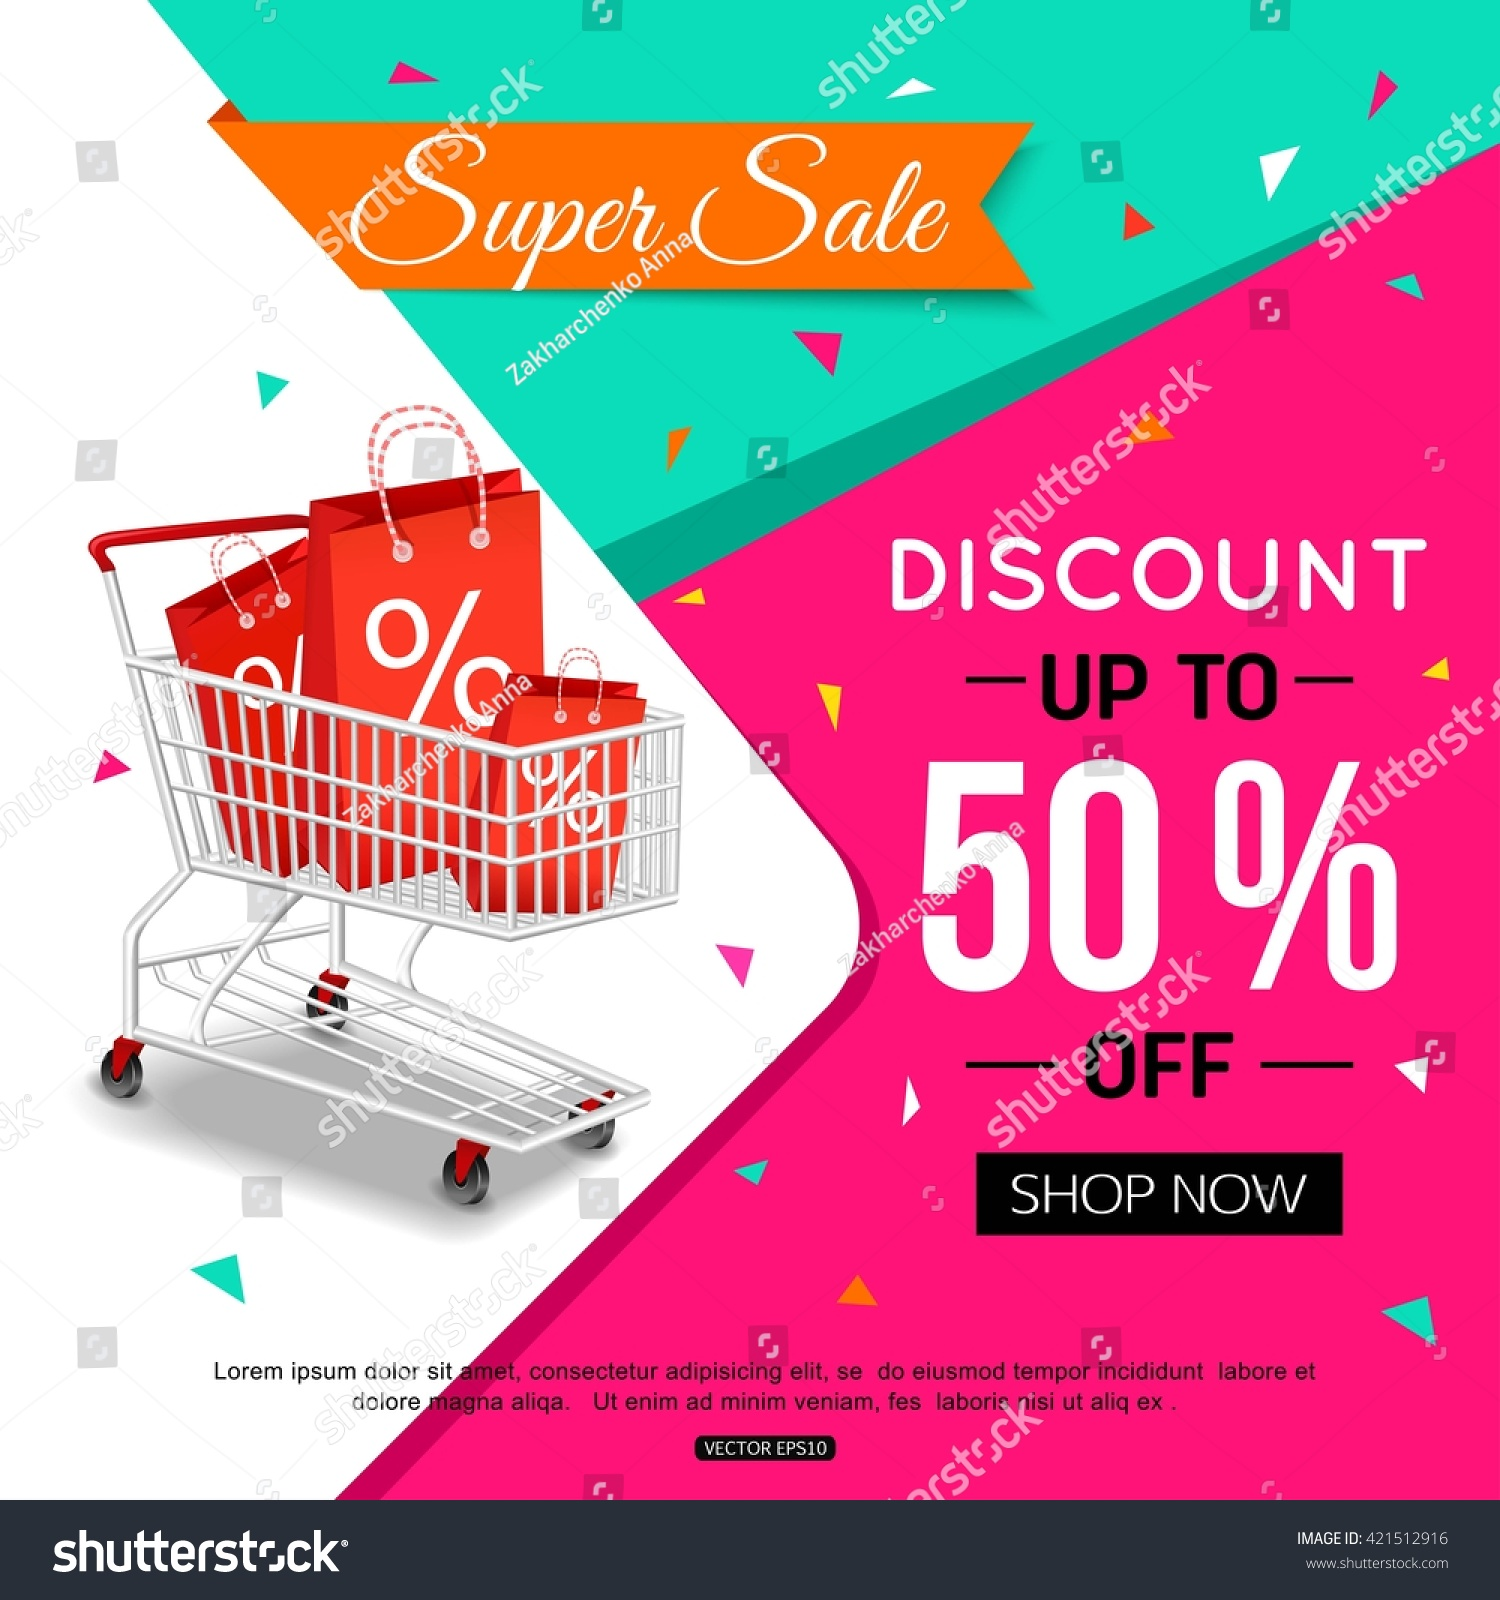 stock-vector-super-sale-banner-design-for-shop-online-store-discount-up-to-off-shop-now-vector-421512916.jpg